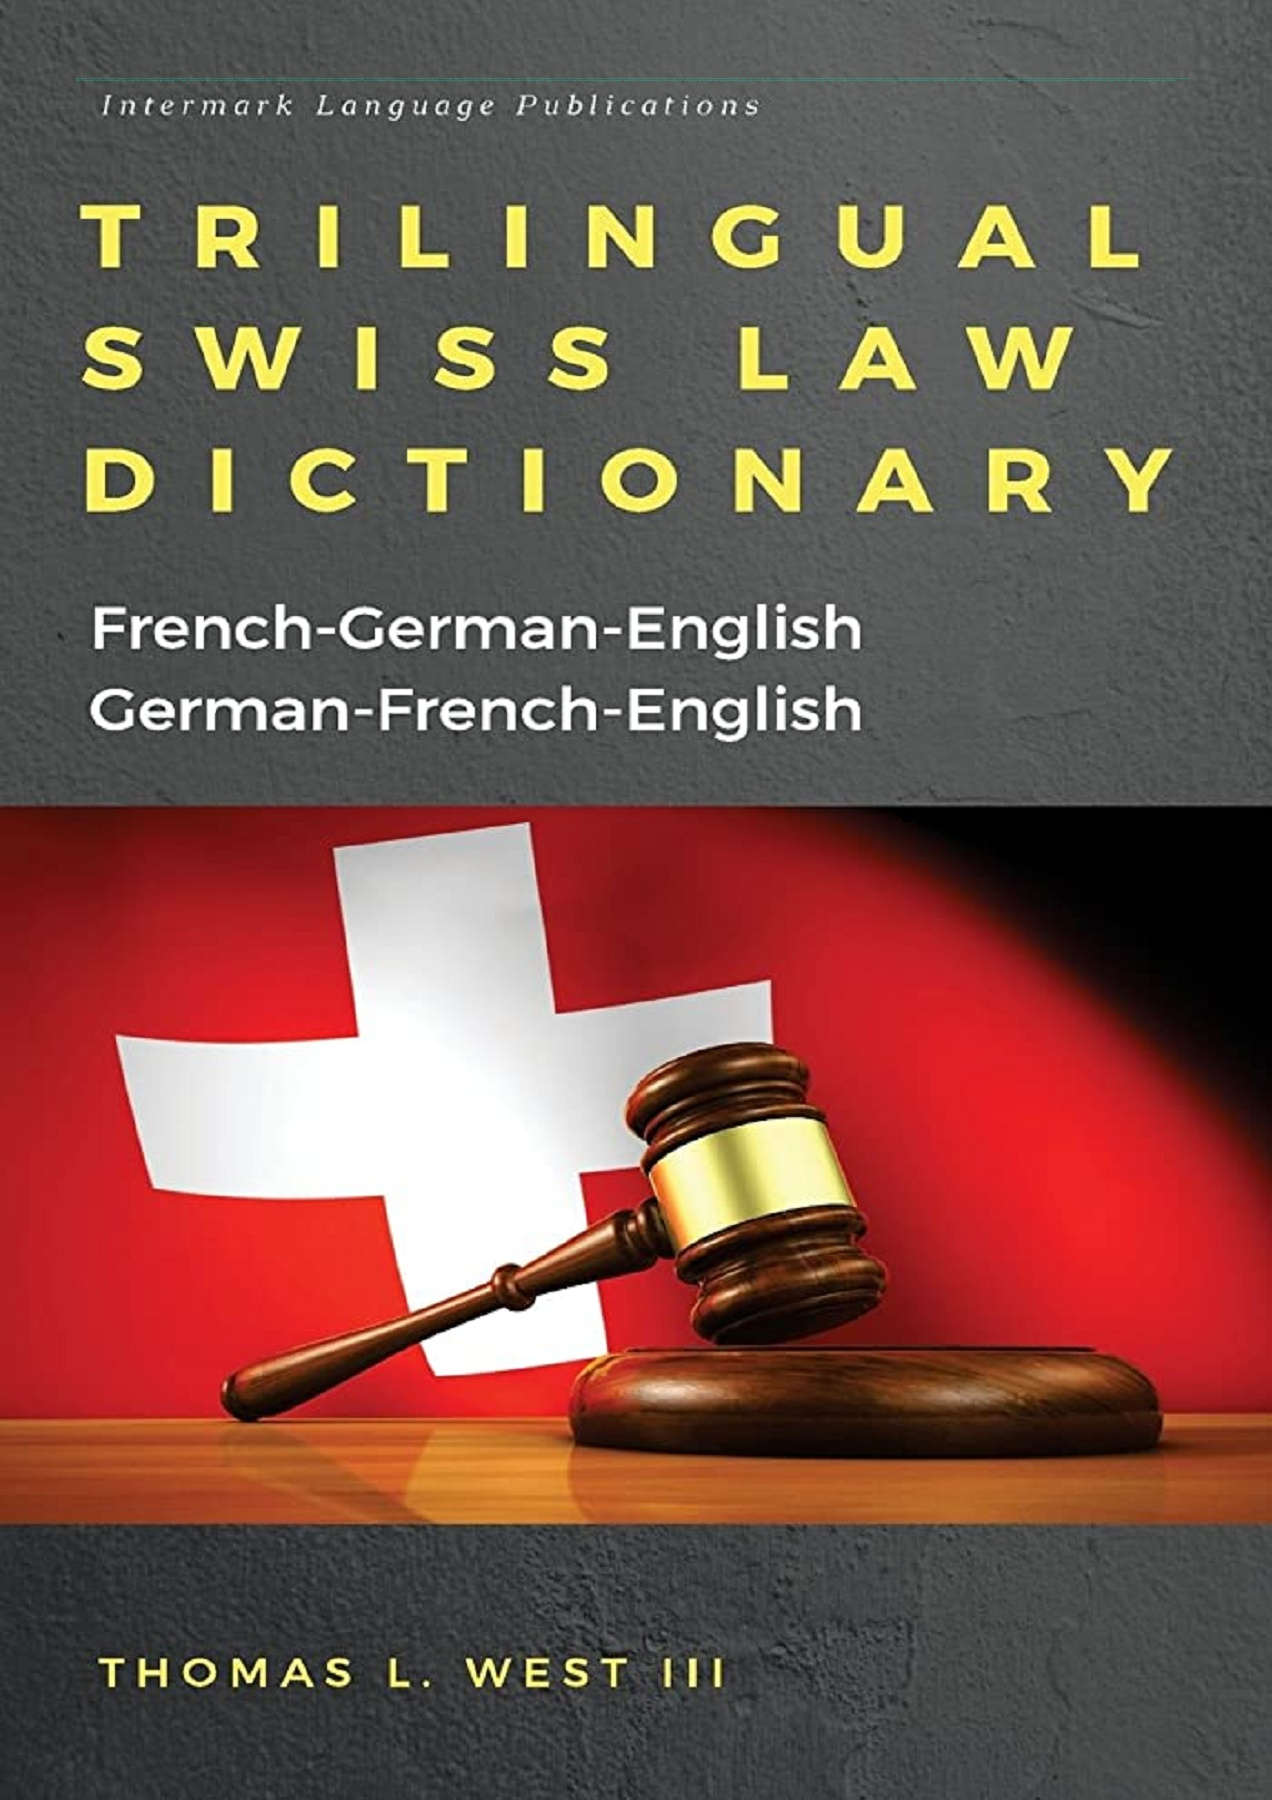 French Dictionary Pdf Download